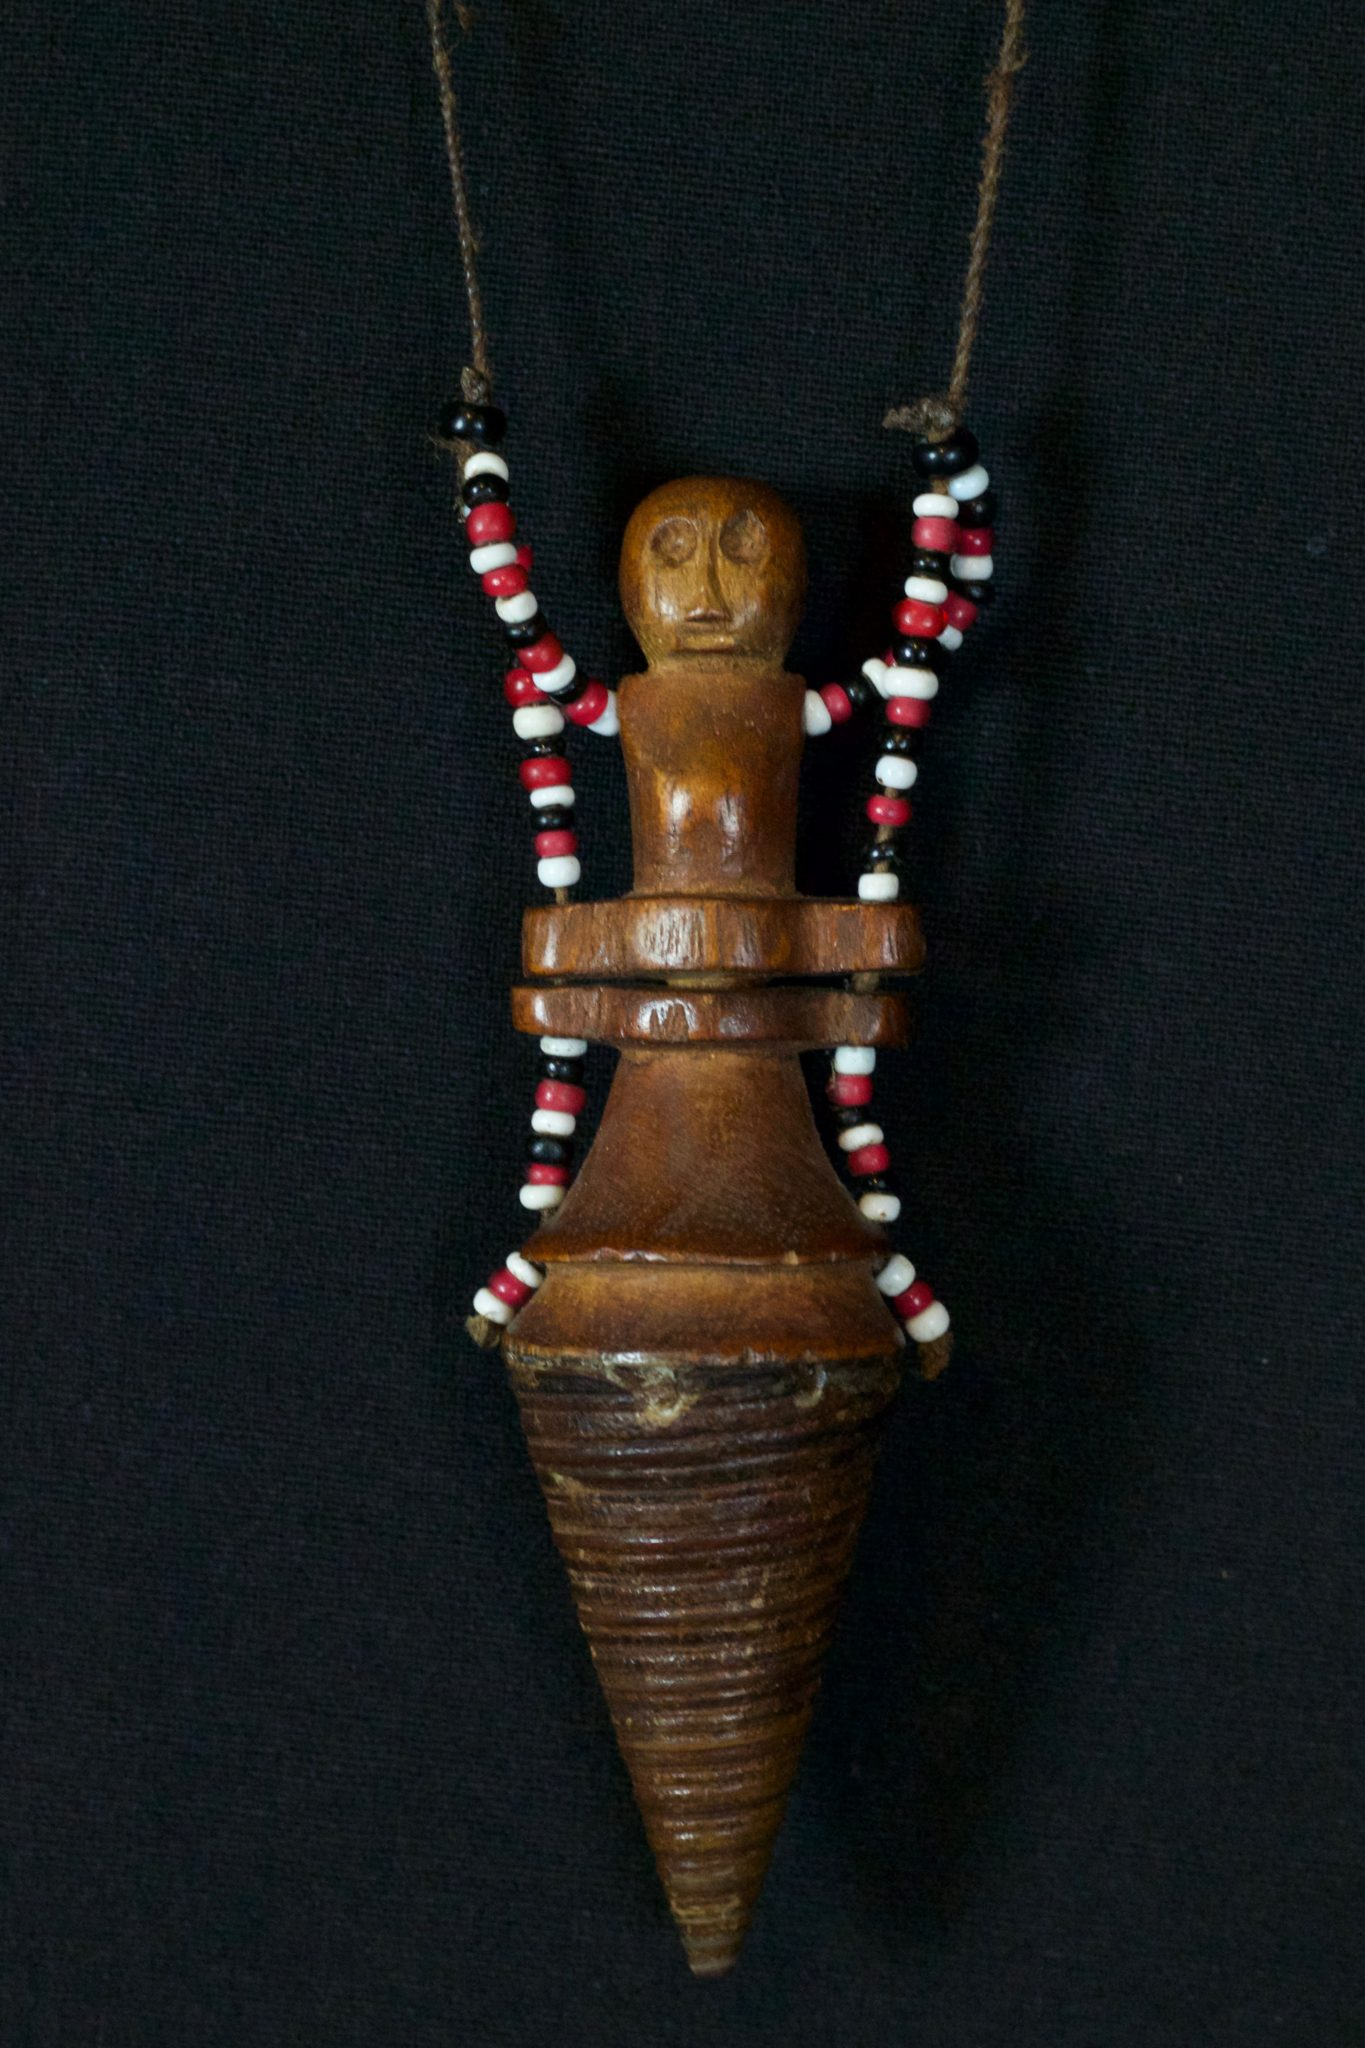 """Shaman Healing Medicine Container Necklace, Alor Island, Timor Islands, Lesser Sunda Islands, Indonesia, Mid 20th c, Wood, beads, shell (Telescopium telescopium, or Horn snail spire). Used to hold medicine for healing rituals, 4 ½"""" x 1 ½"""" x 1 ¼"""", $390."""